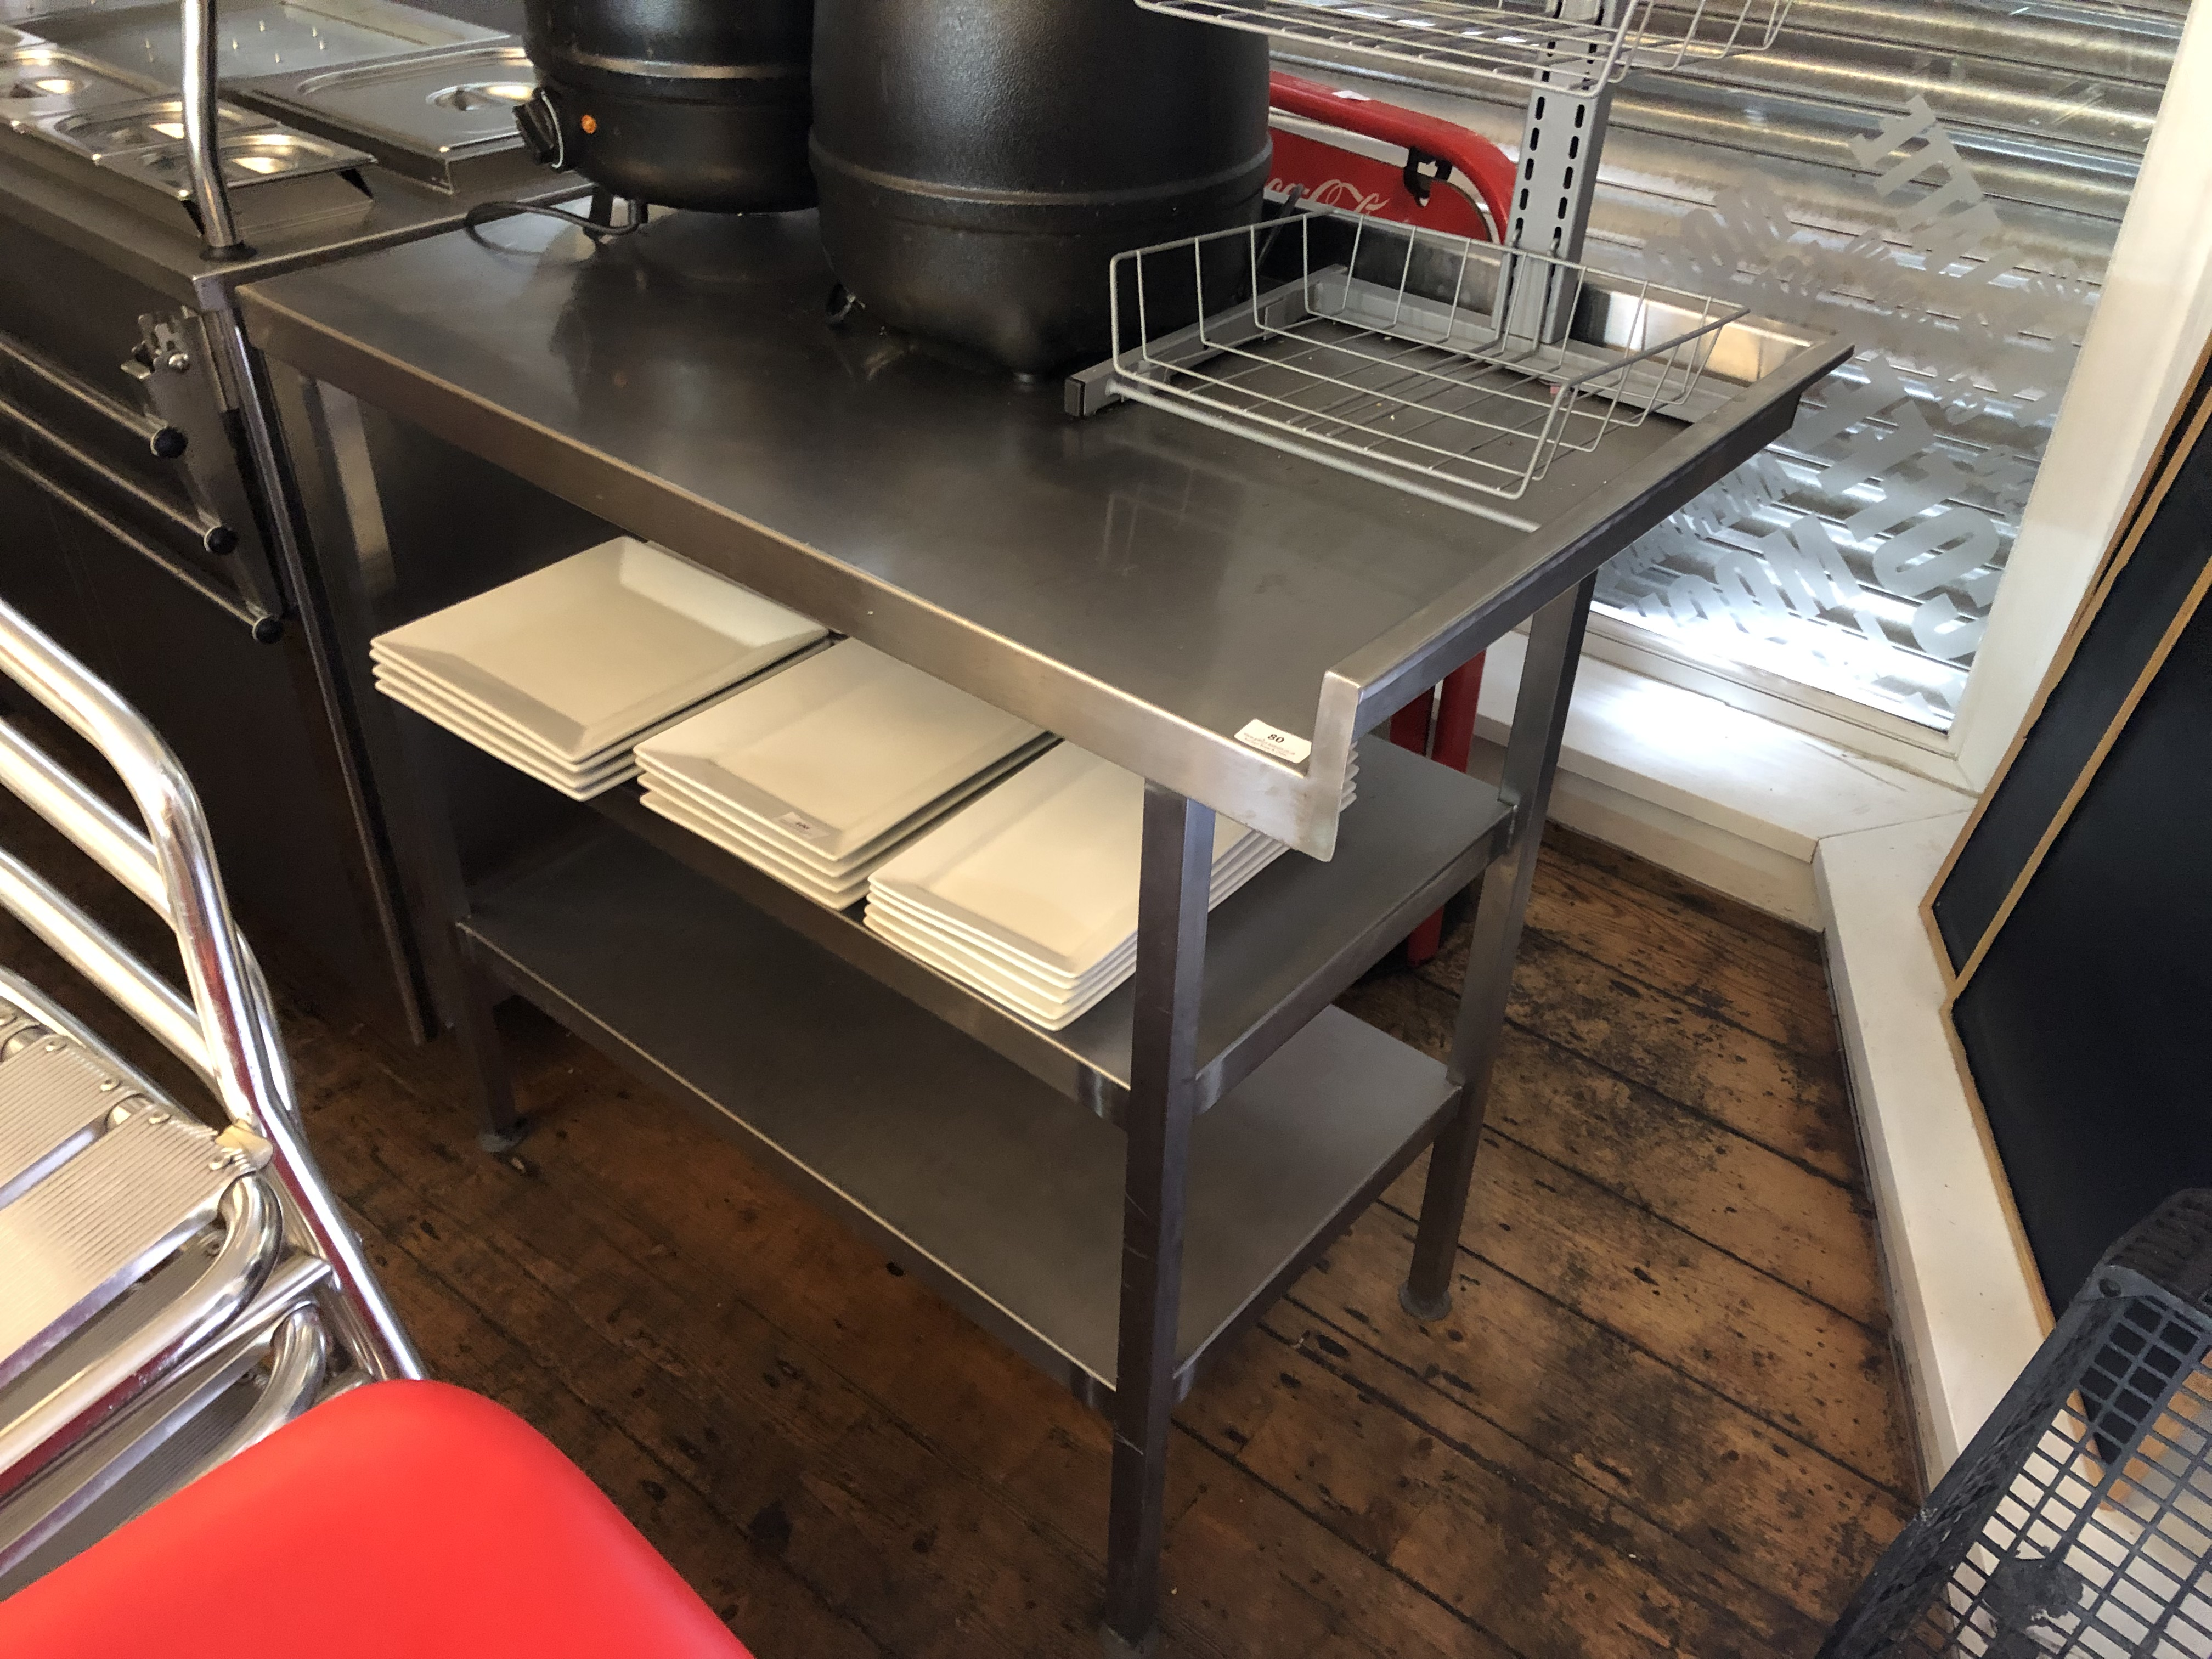 Lot 80 - Stainless Steel Preparation Table with Undershelf